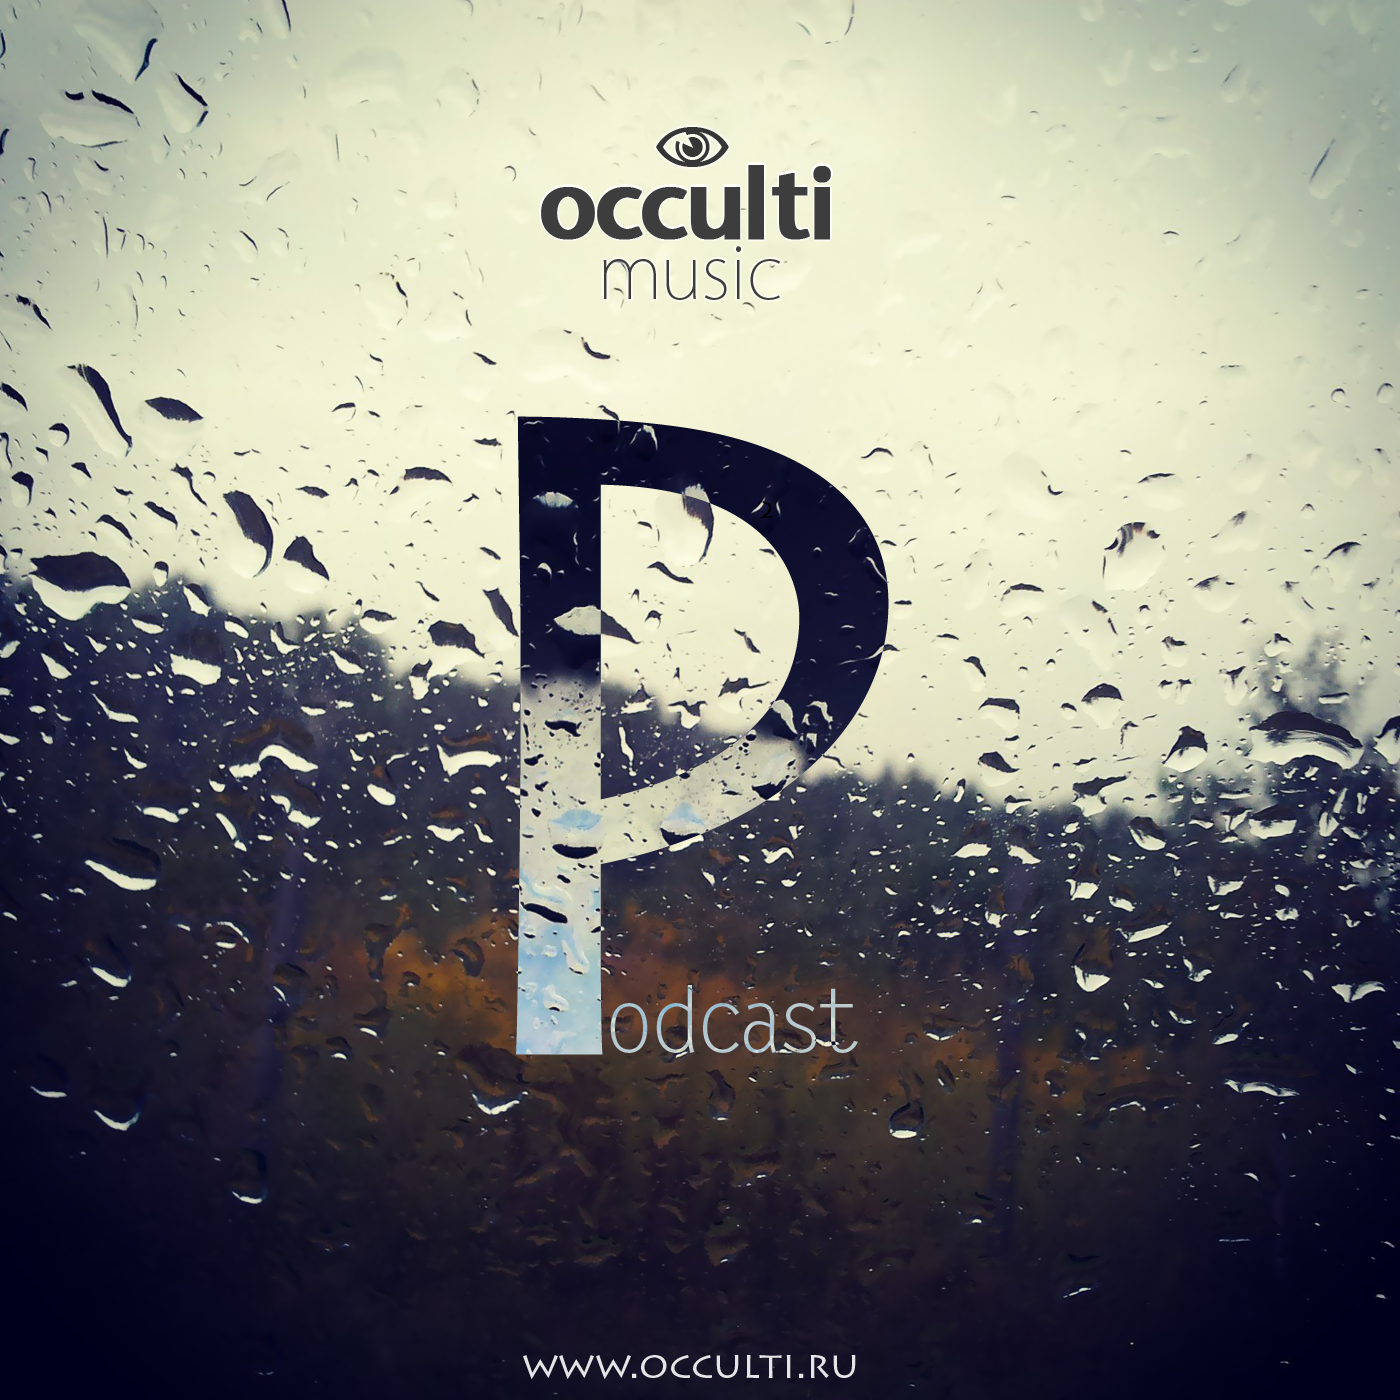 Occulti Music podcast